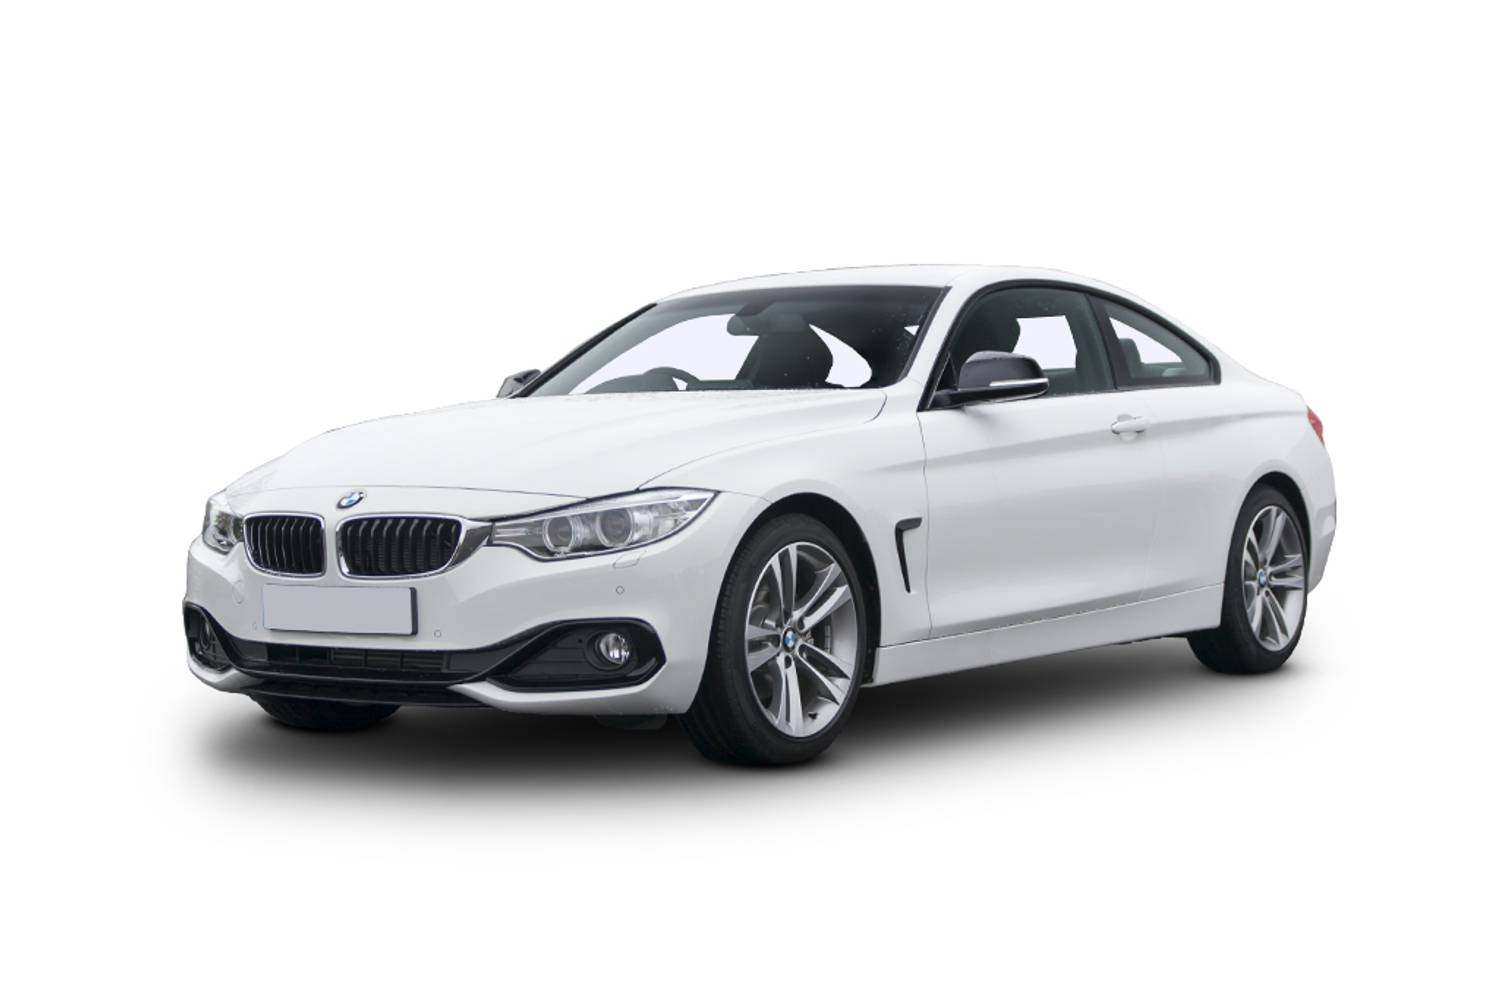 New bmw 4 series diesel coupe 430d xdrive m sport 2 door auto professional media 2015 for sale - Bmw 2 series coupe xdrive ...